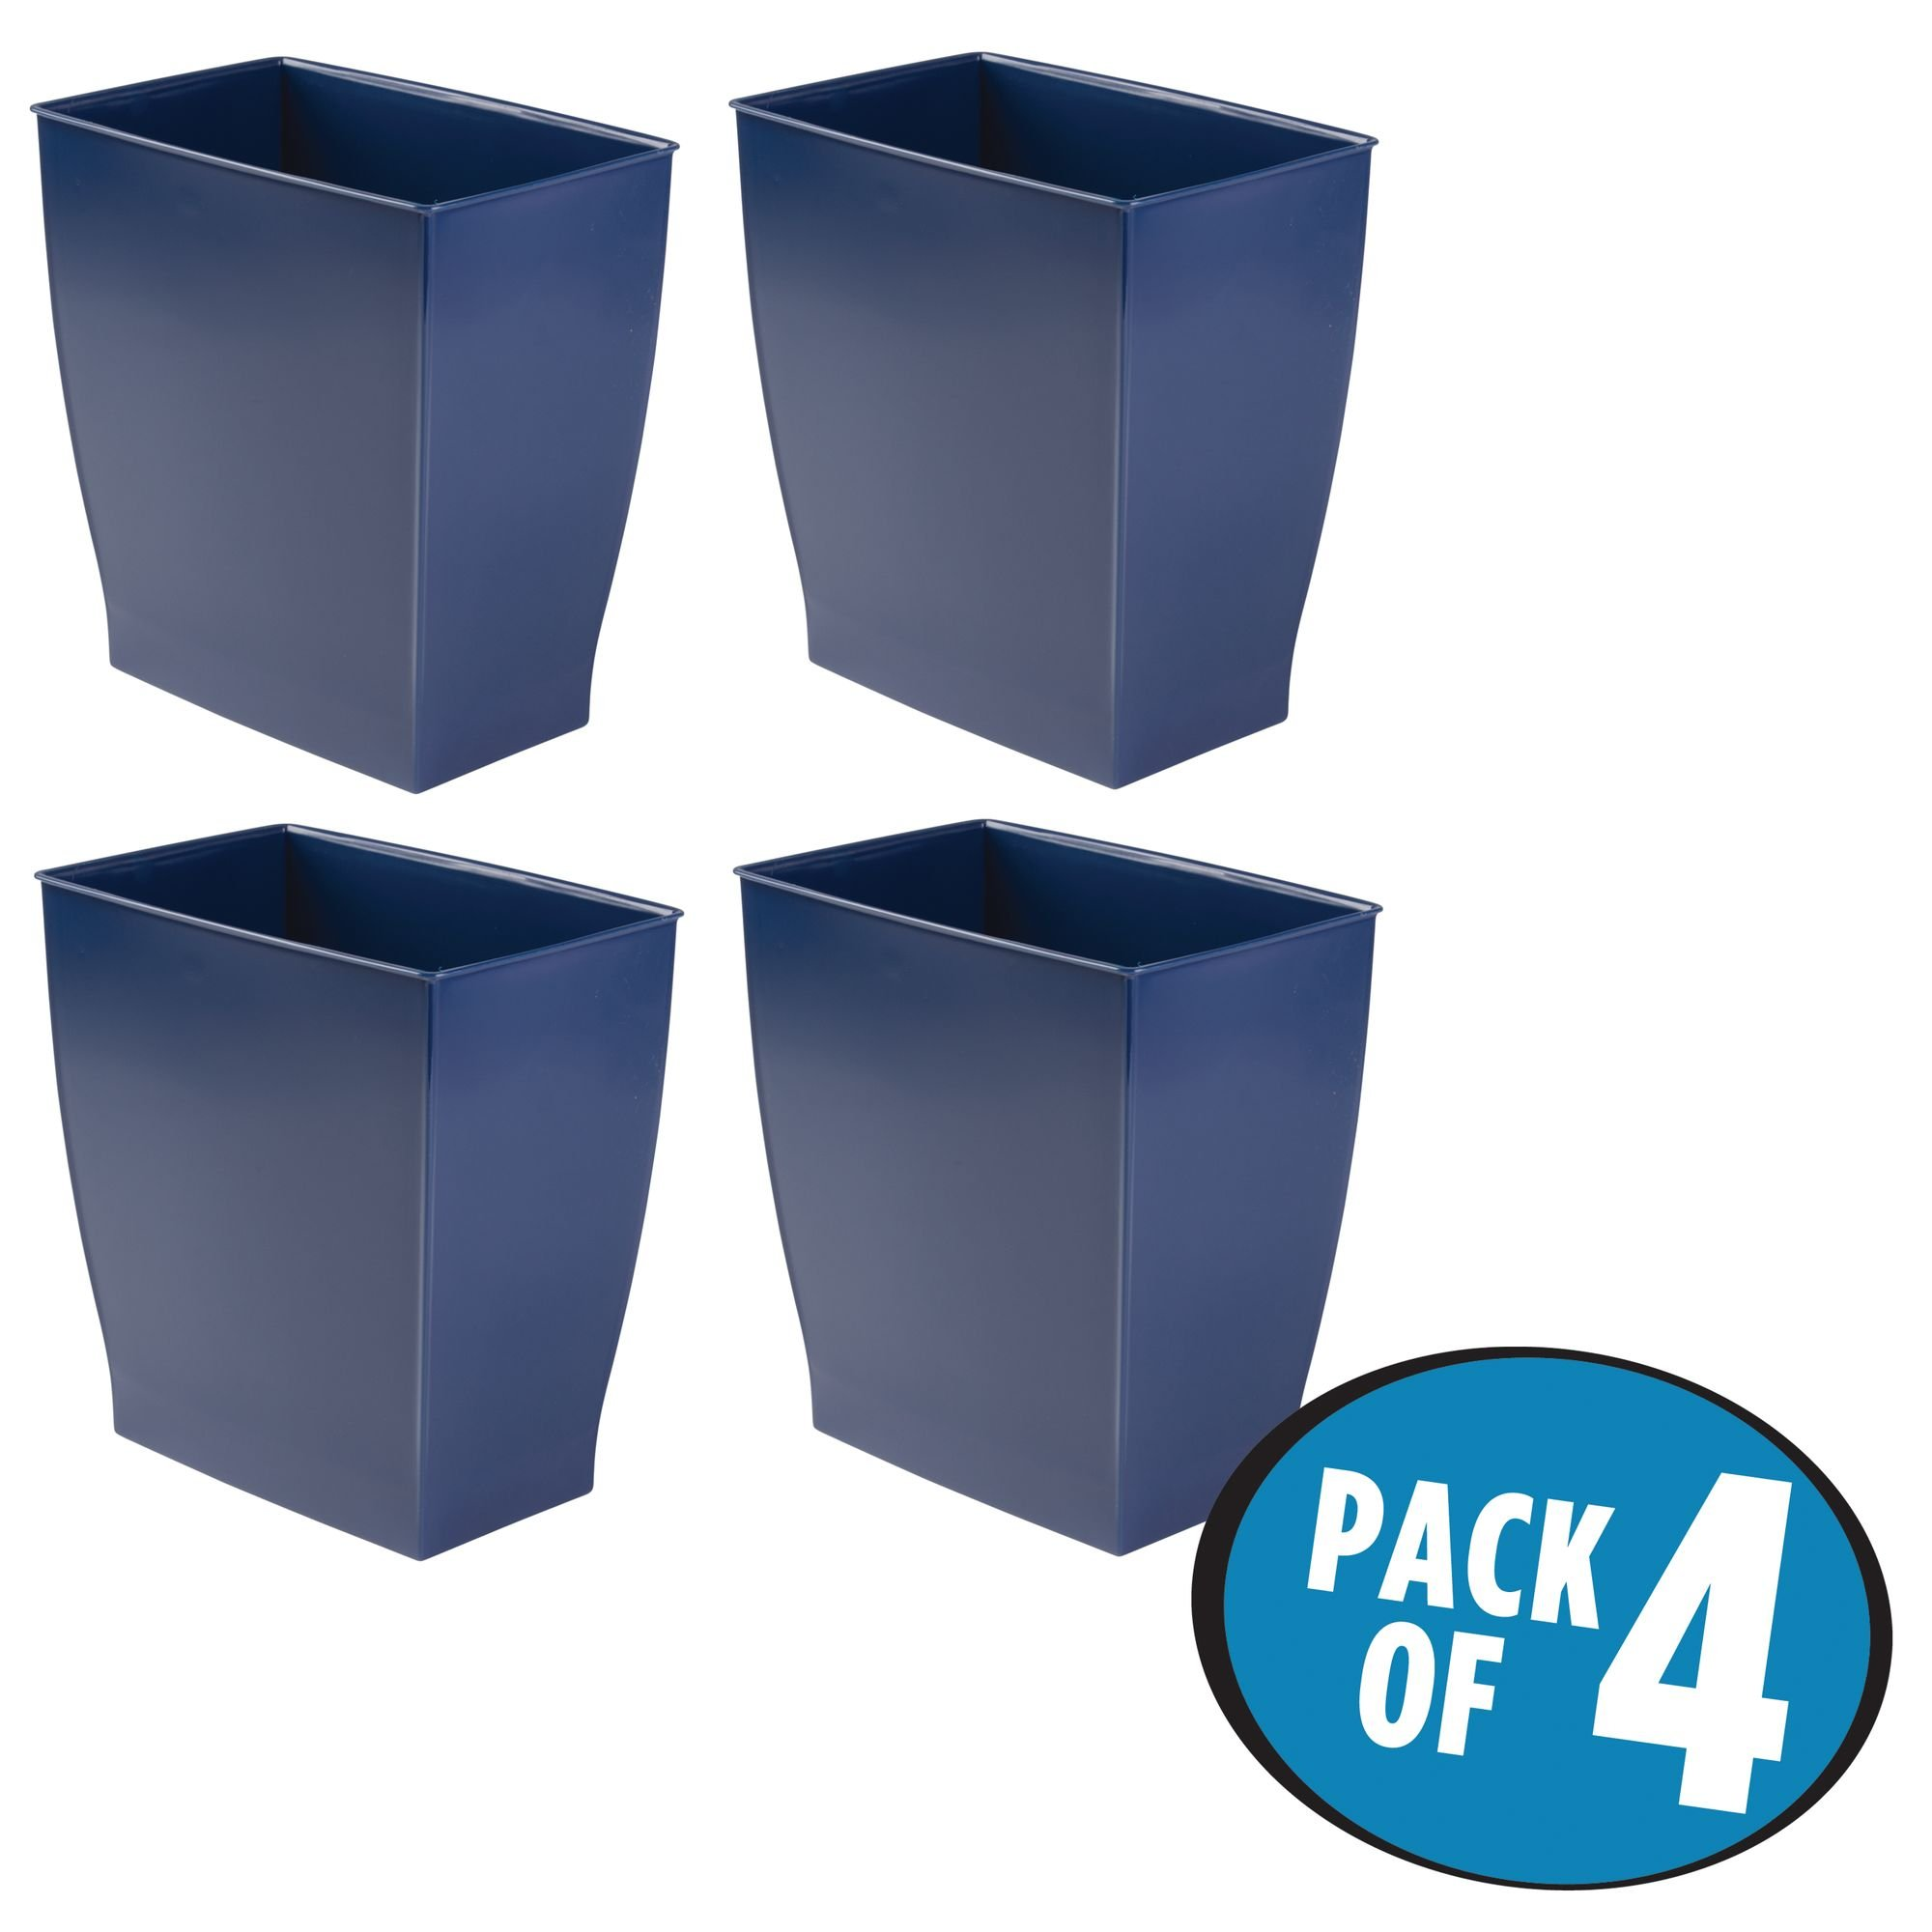 mDesign Rectangular Trash Can Wastebasket, Small Garbage Container Bin for Bathrooms, Powder Rooms, Kitchens, Home Offices - Pack of 4, Shatter-Resistant Plastic, Navy Blue